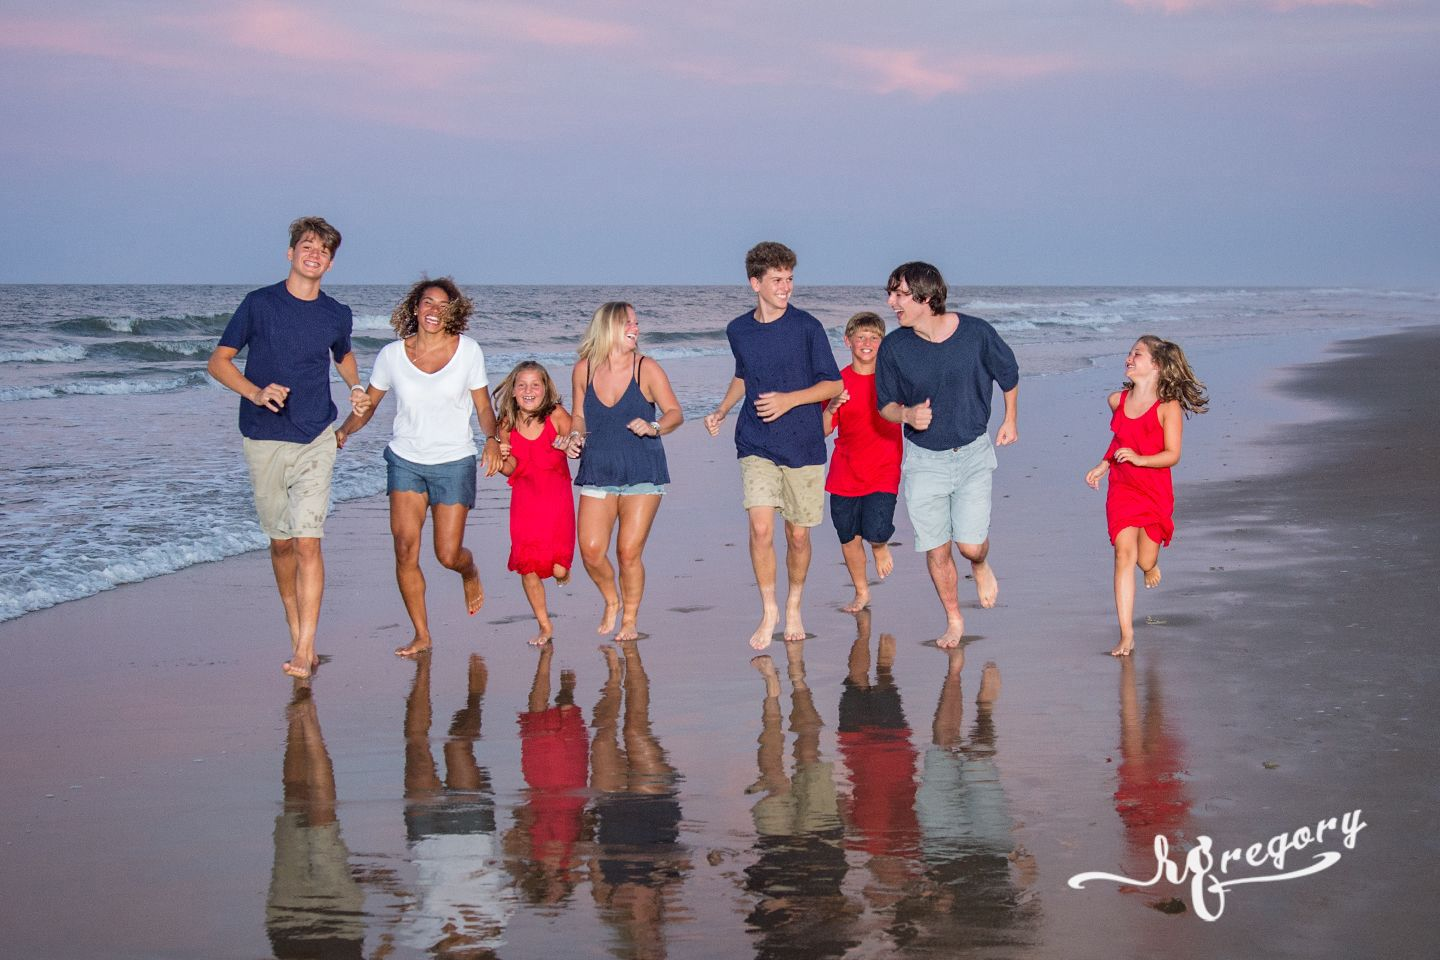 Carbonaro family portrait virginia beach sunset